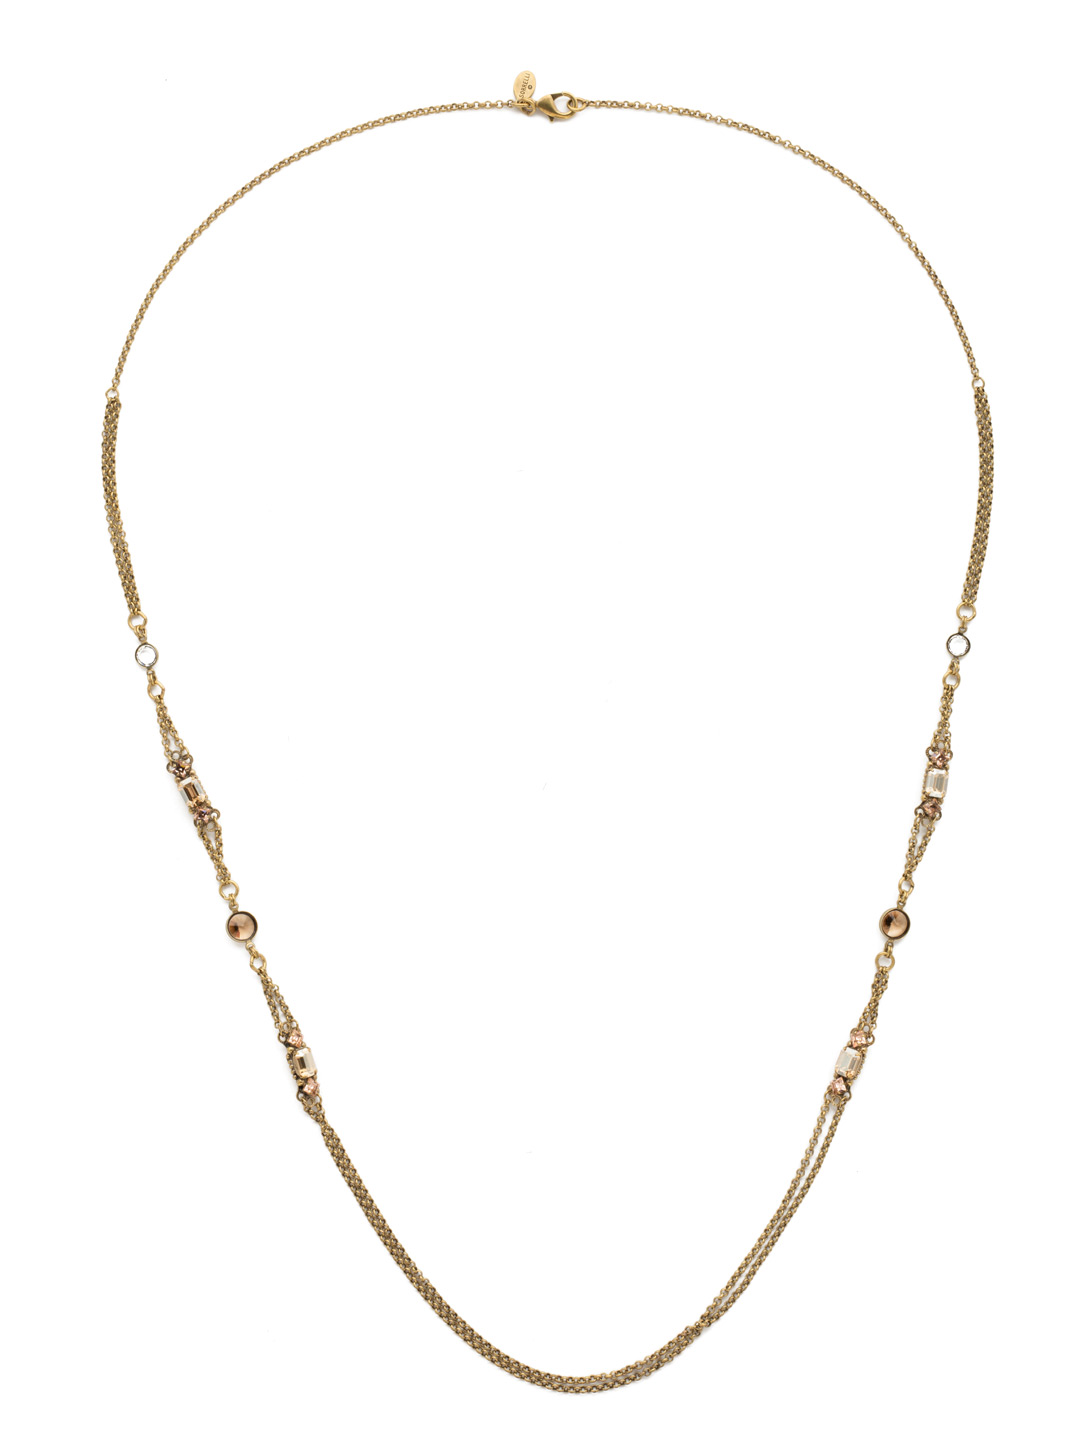 fe07f1540e Delicate Vintage Inspired Long Strand Necklace in Raw Sugar ...